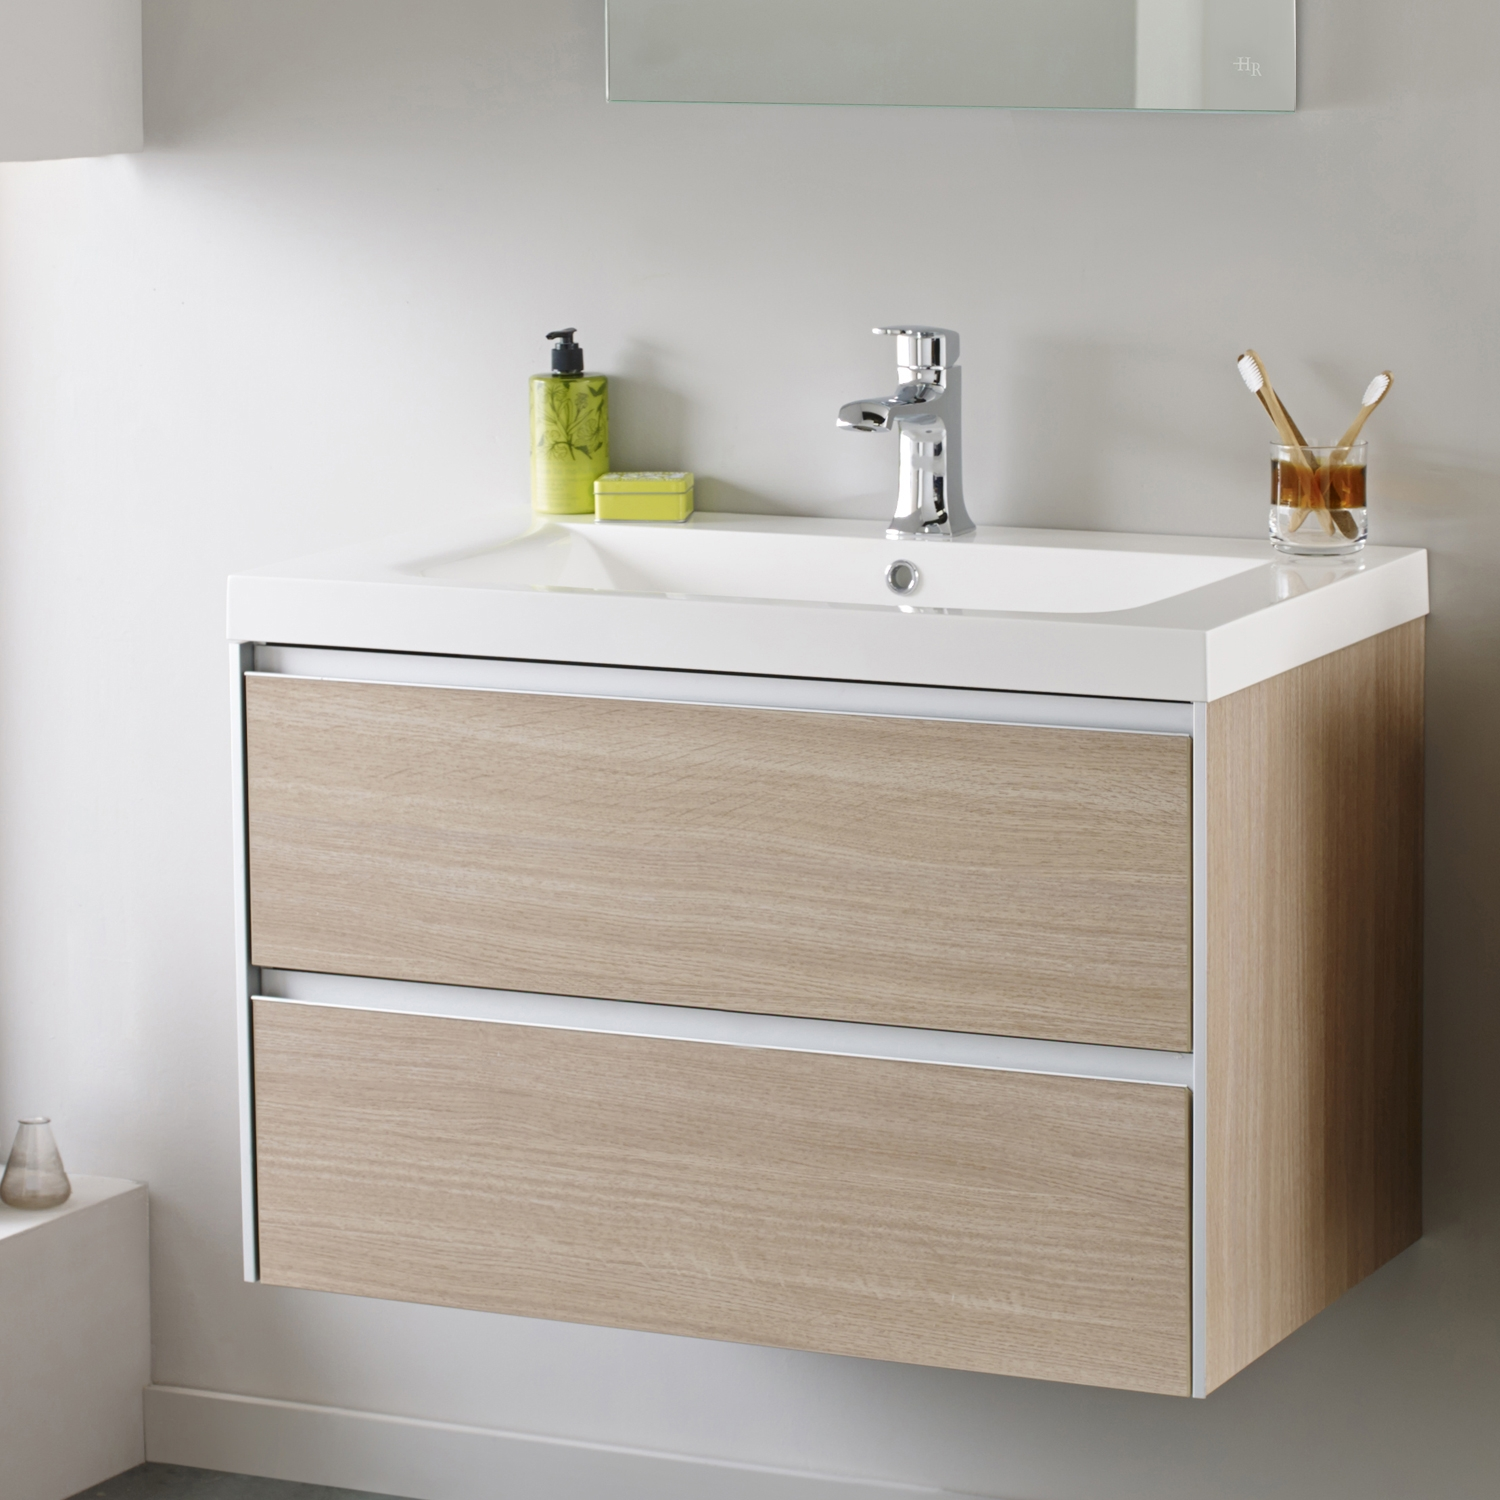 Hudson reed erin vanity unit 800mm wall mounted fen001 hudson reed erin wall mounted basin and cabinet 800mm wide light oak 1 aloadofball